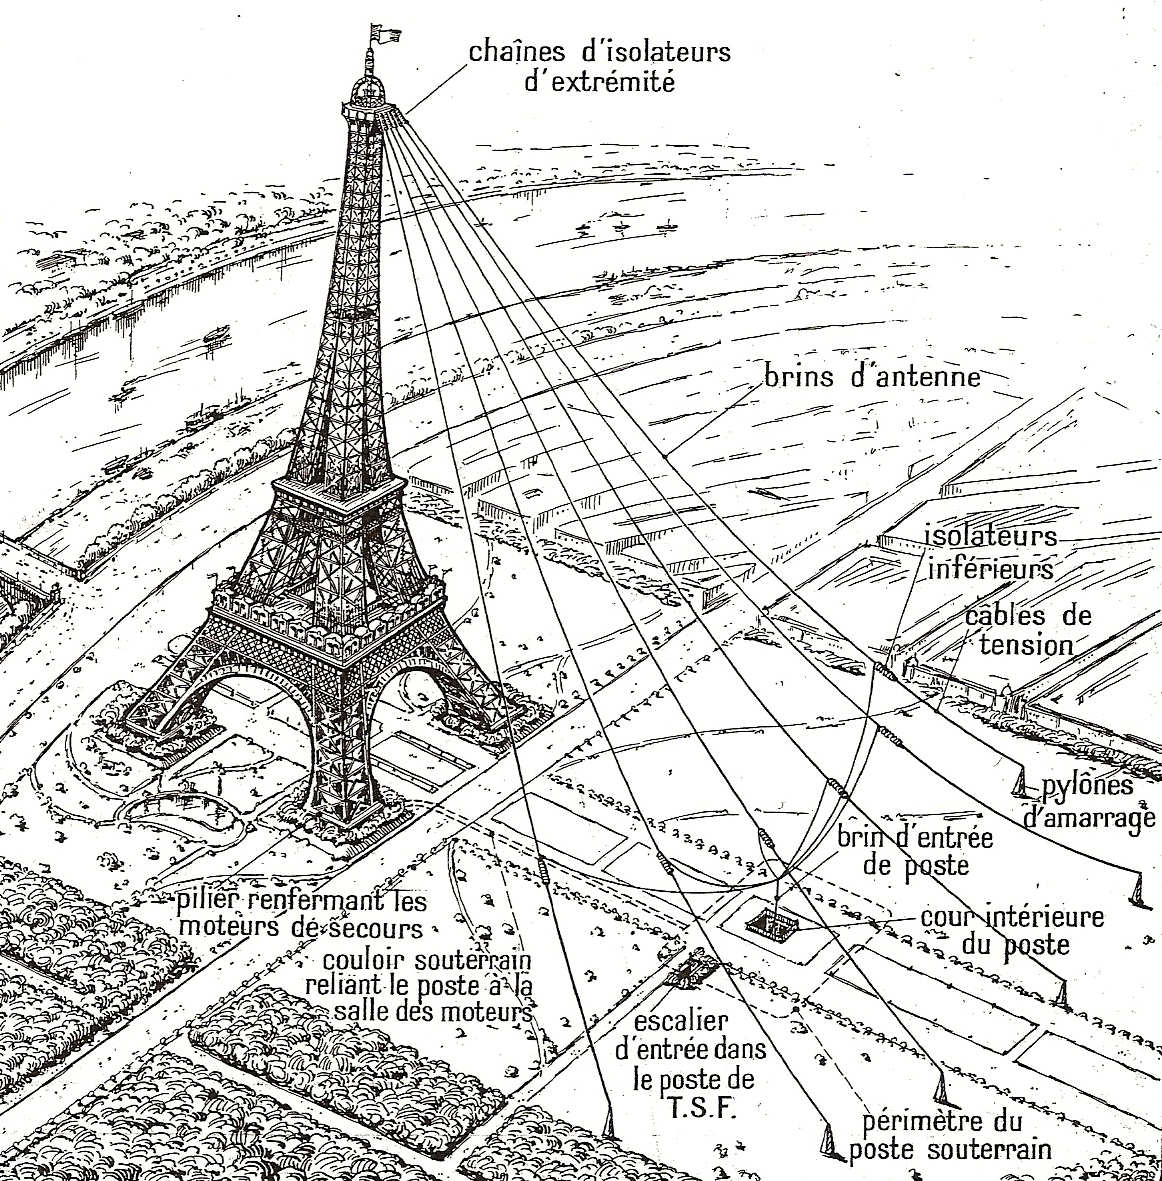 A diagram of the radio antenna depending from the Eiffel Tower